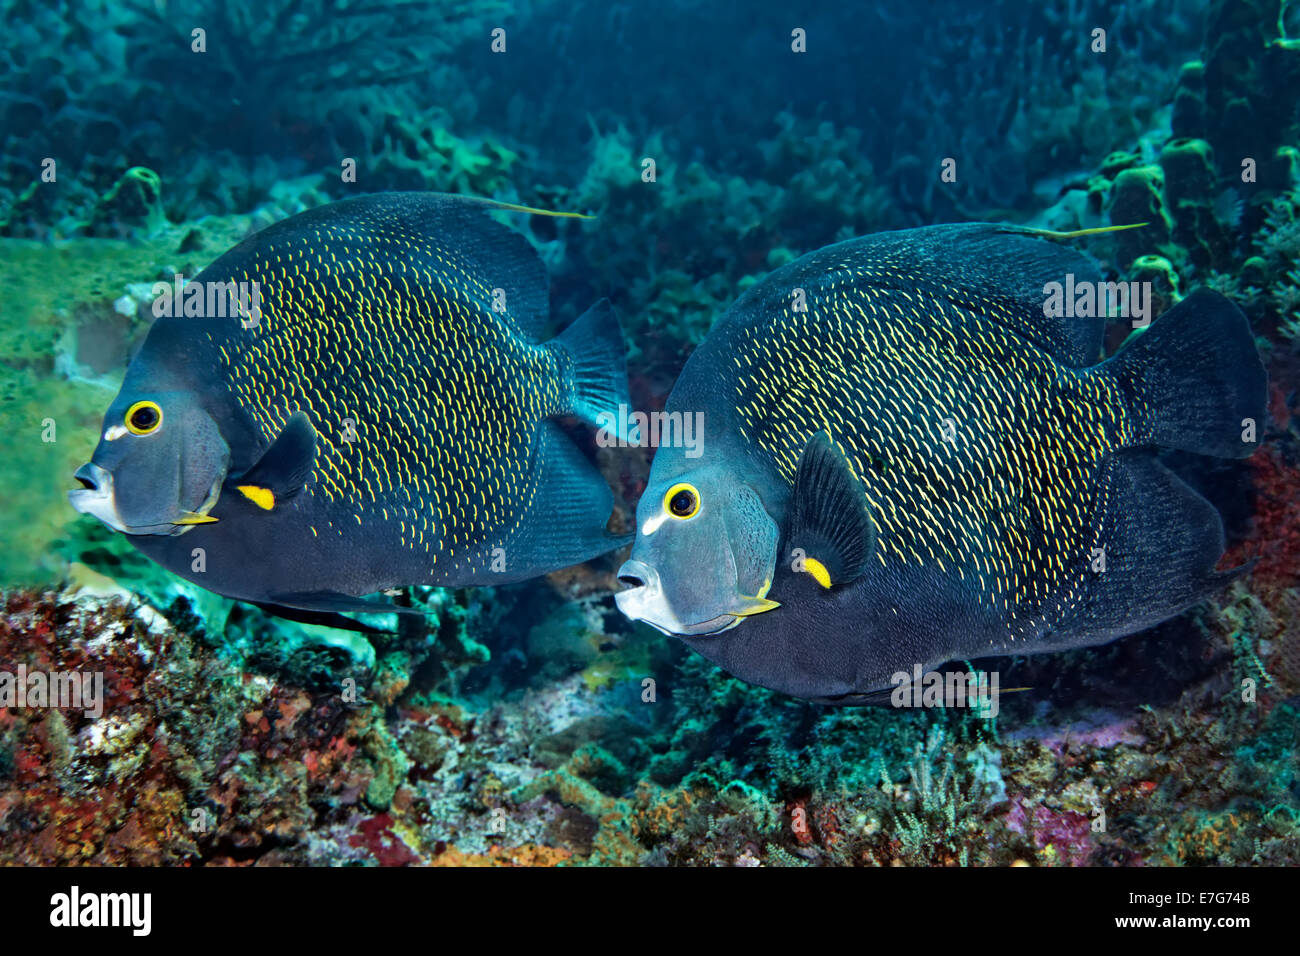 Two French Angelfishes (Pomacanthus paru) above coral reef, Little Tobago, Trinidad and Tobago - Stock Image